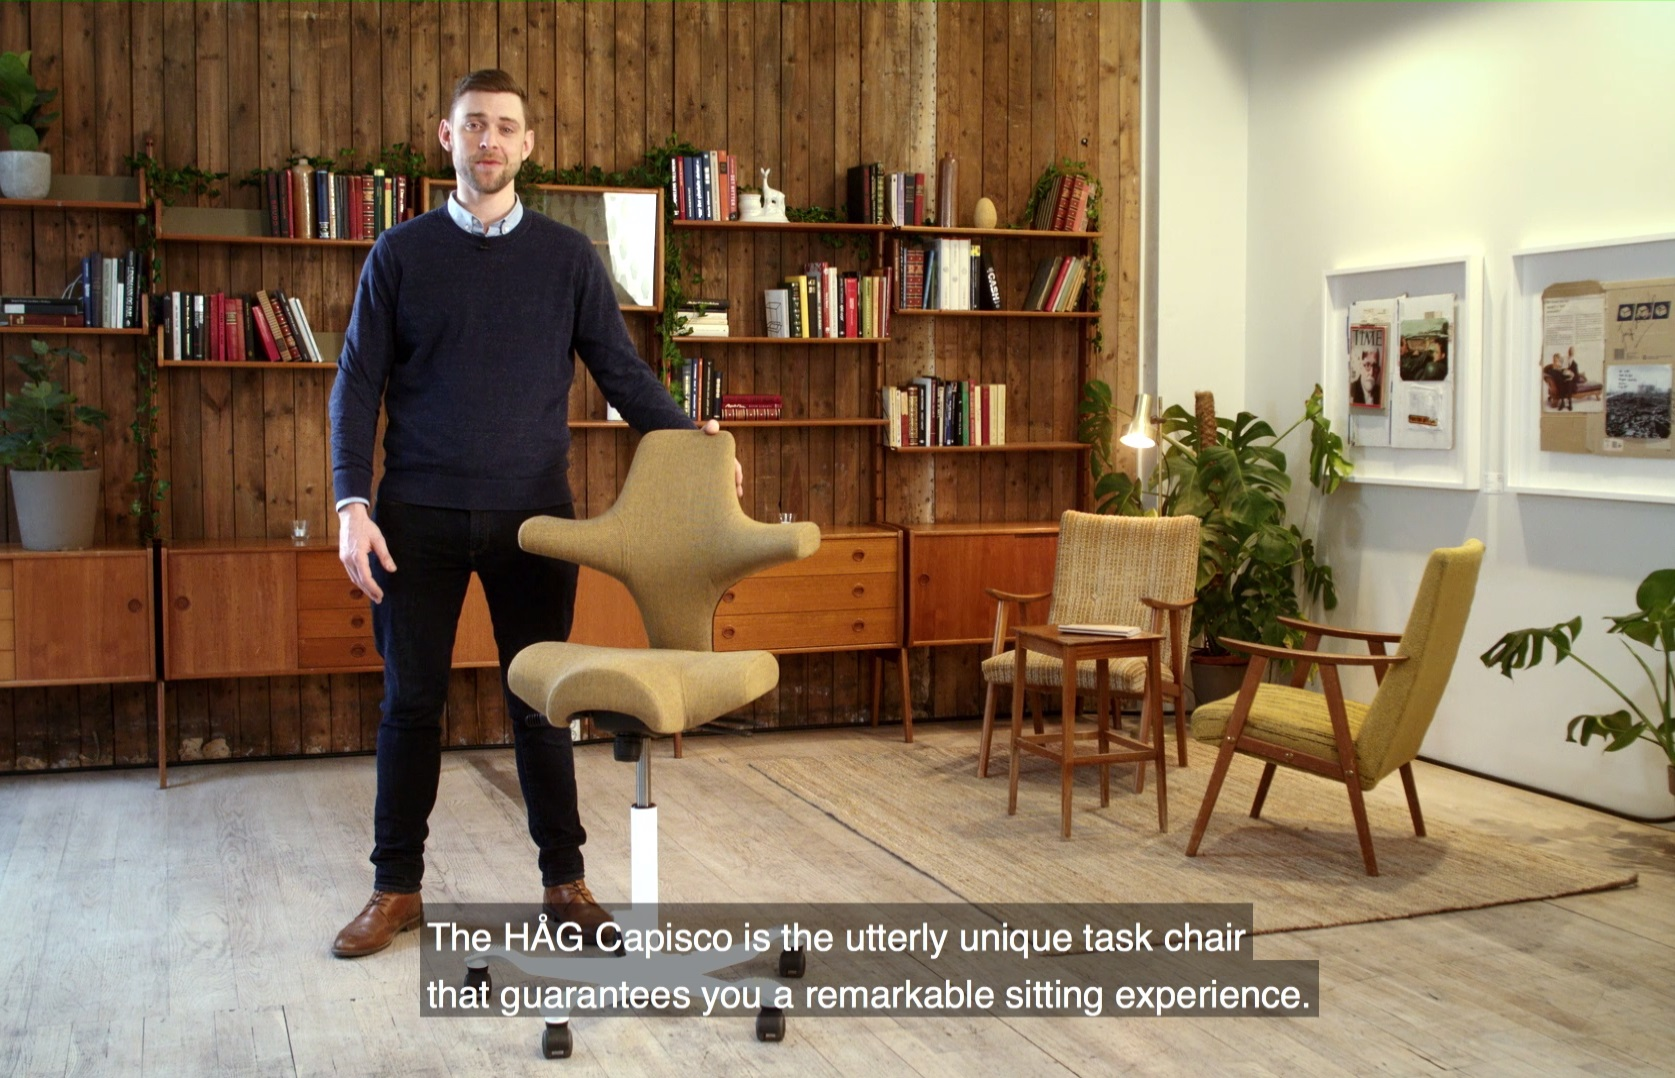 HÅG Capisco video about the qualities of the ergonomical design behind desk chair